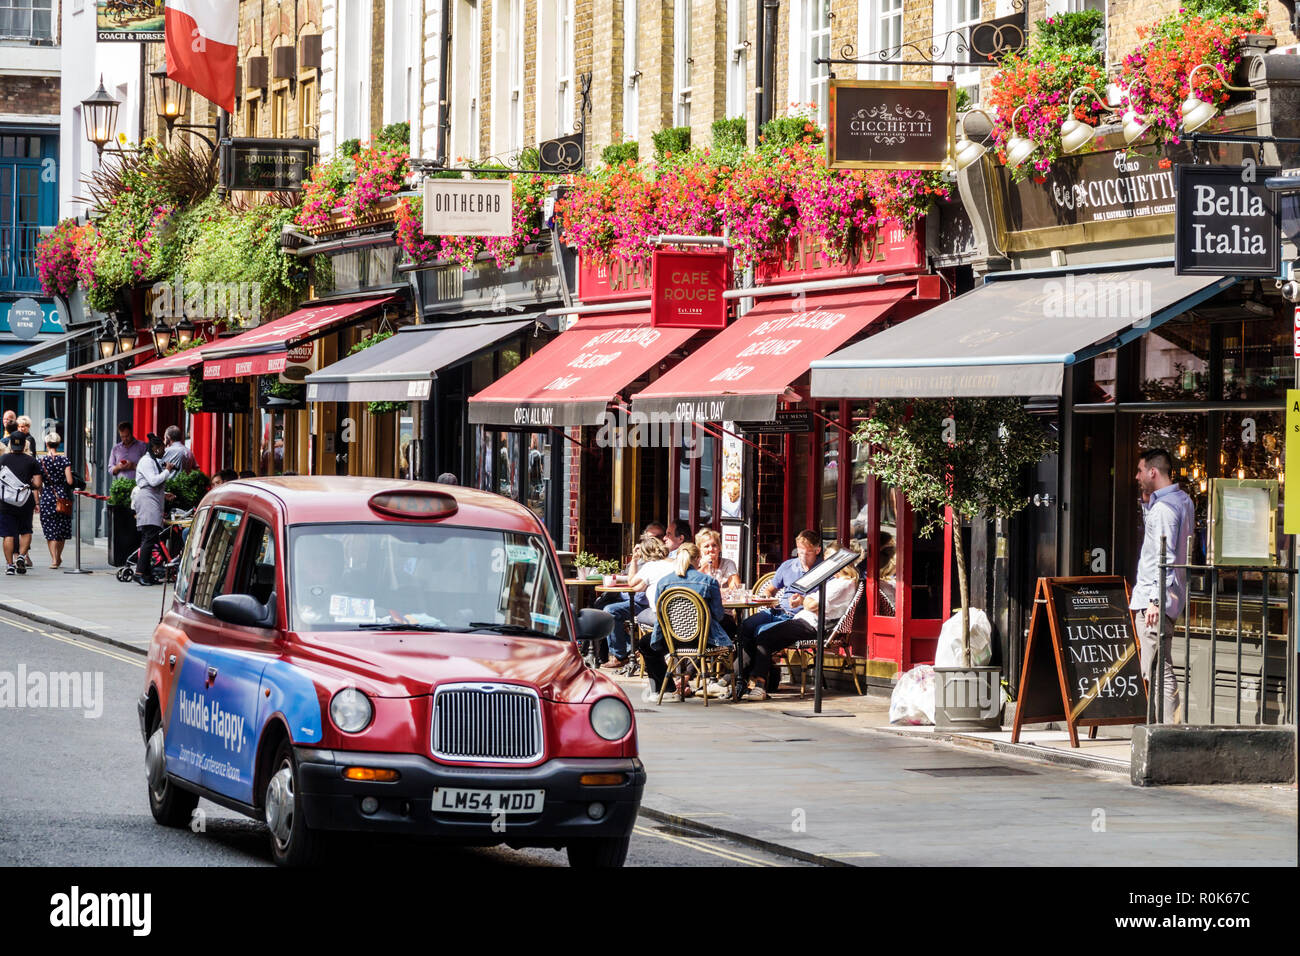 London England United Kingdom Great Britain Covent Garden Wellington Street shopping dining entertainment district restaurants sidewalk cafe awnings t - Stock Image